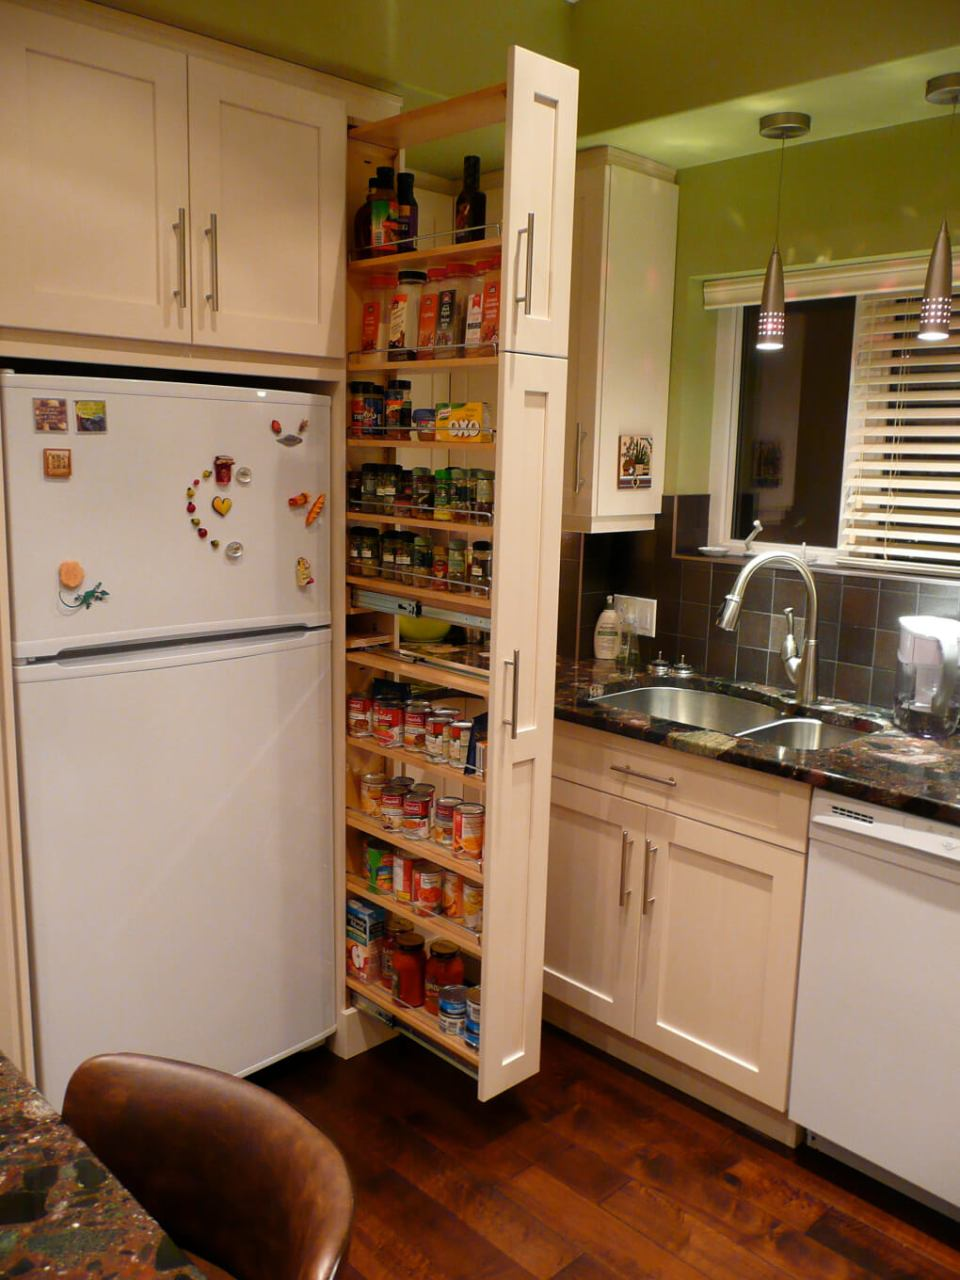 The narrow cabinet beside the fridge pulls out to reveal a spice & canned goods pantry